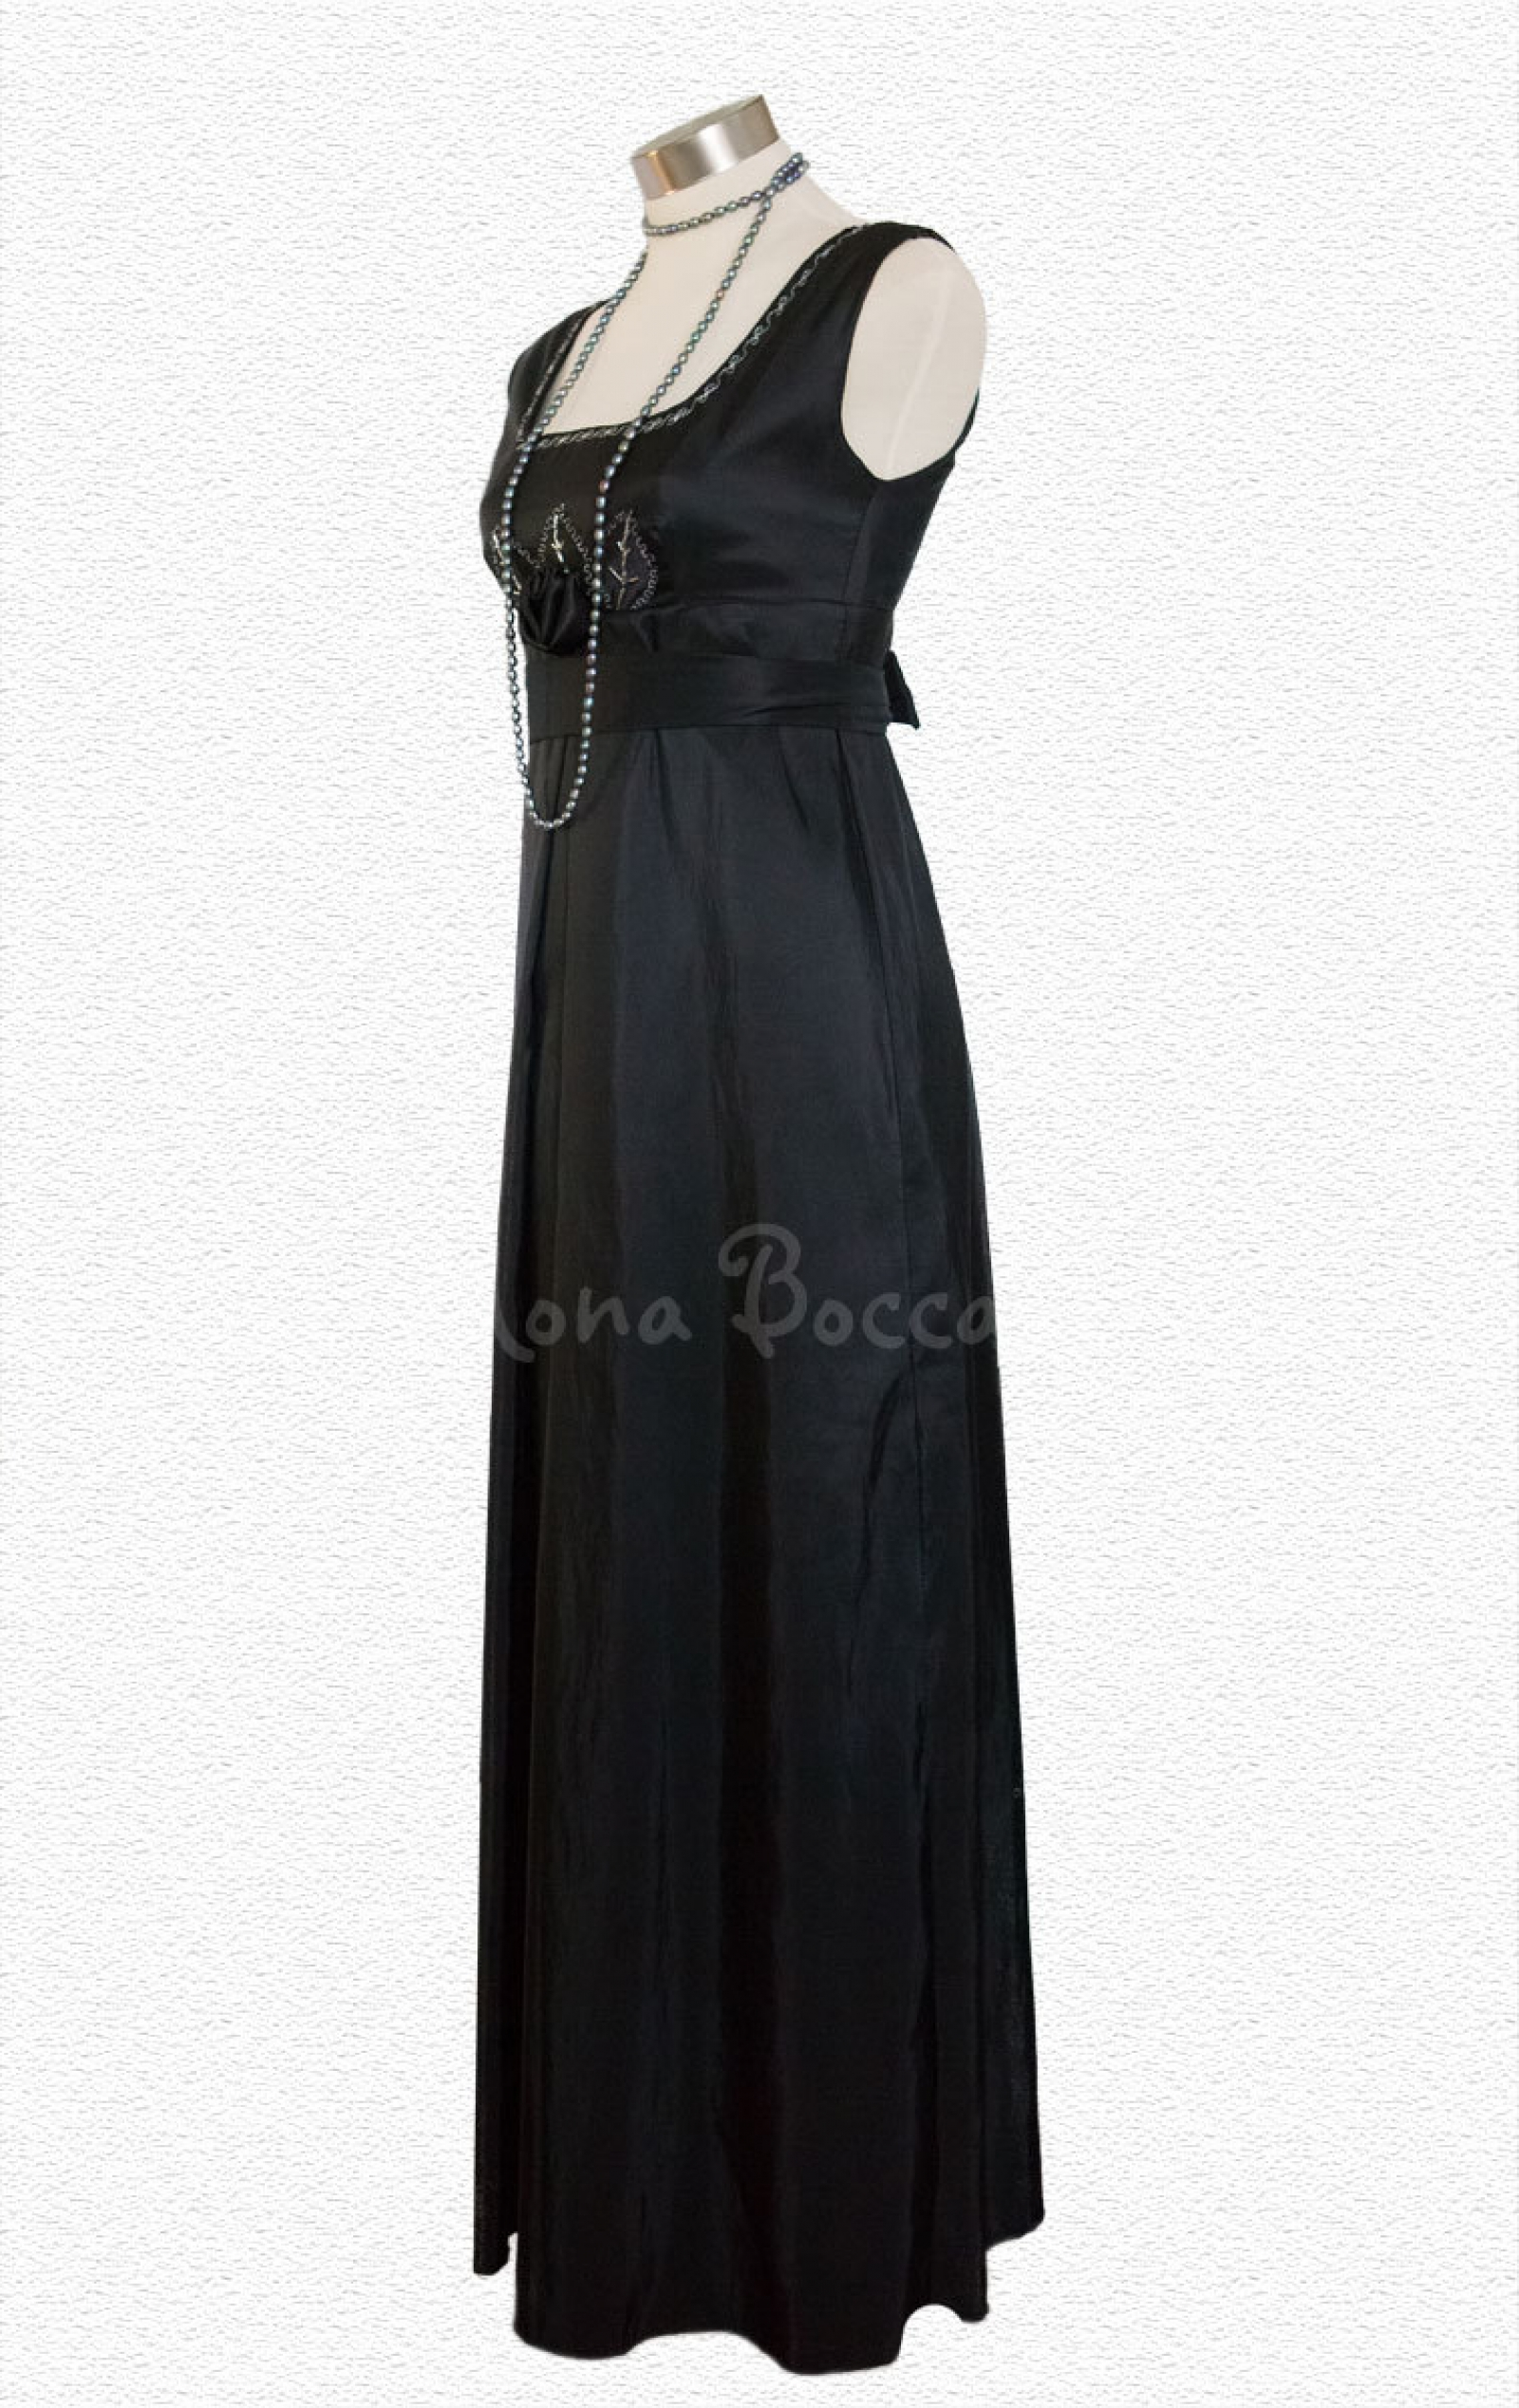 Hand made Edwardian dress - inspired by Downton Abbey period ...